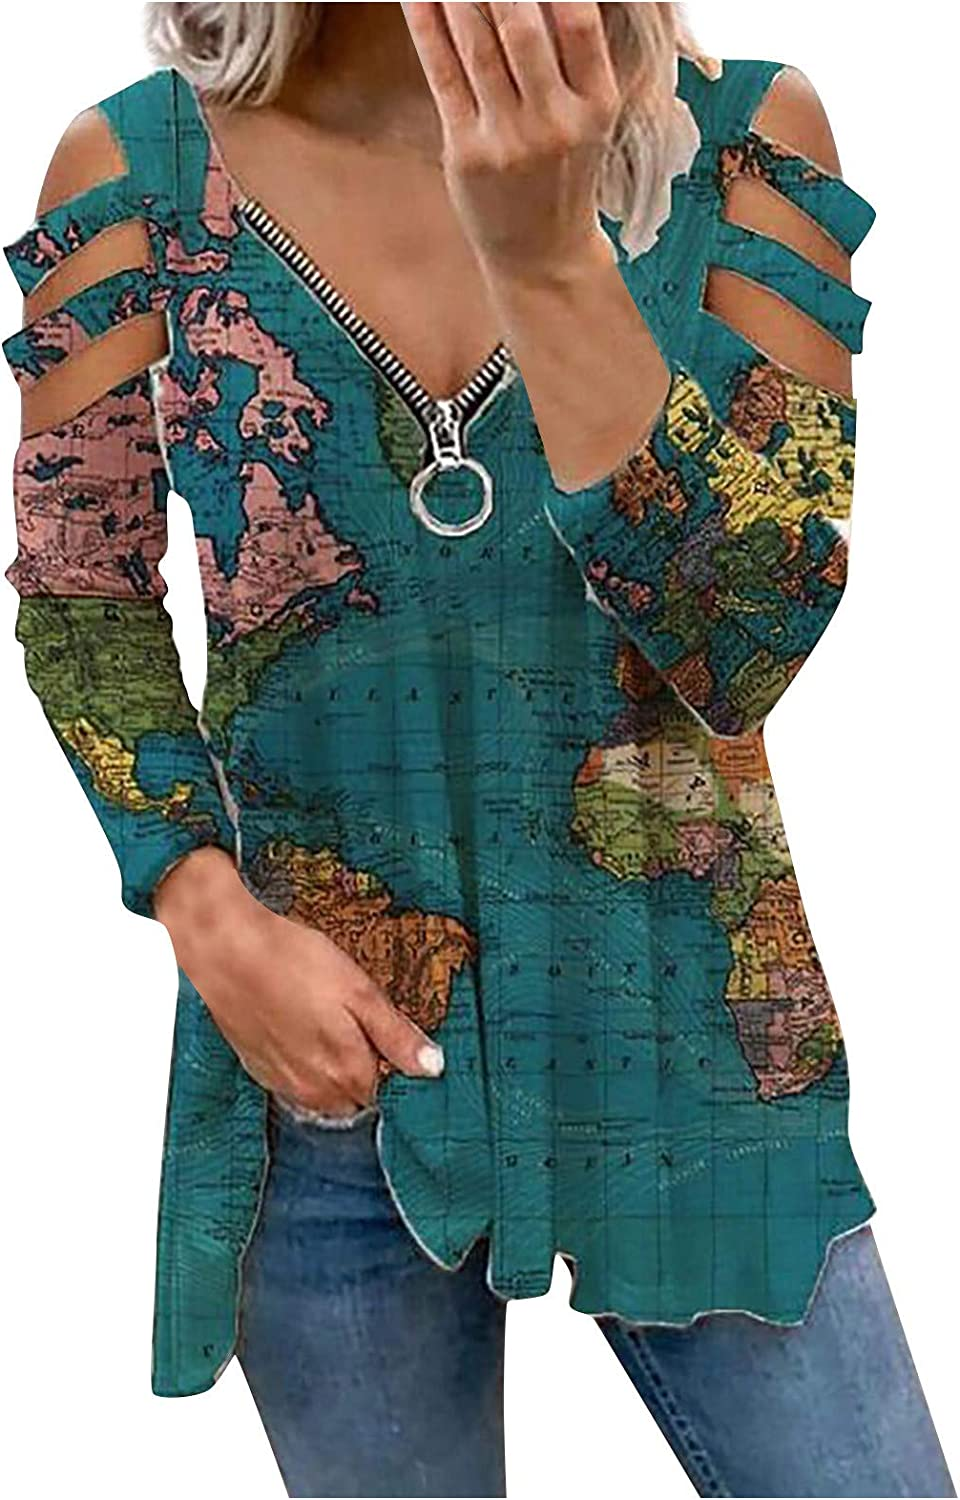 Womens Summer Tops,Women's Tops Casual Pullover Comfy Tunic Cute Printed Blouses Loose Casual Shirts Tees